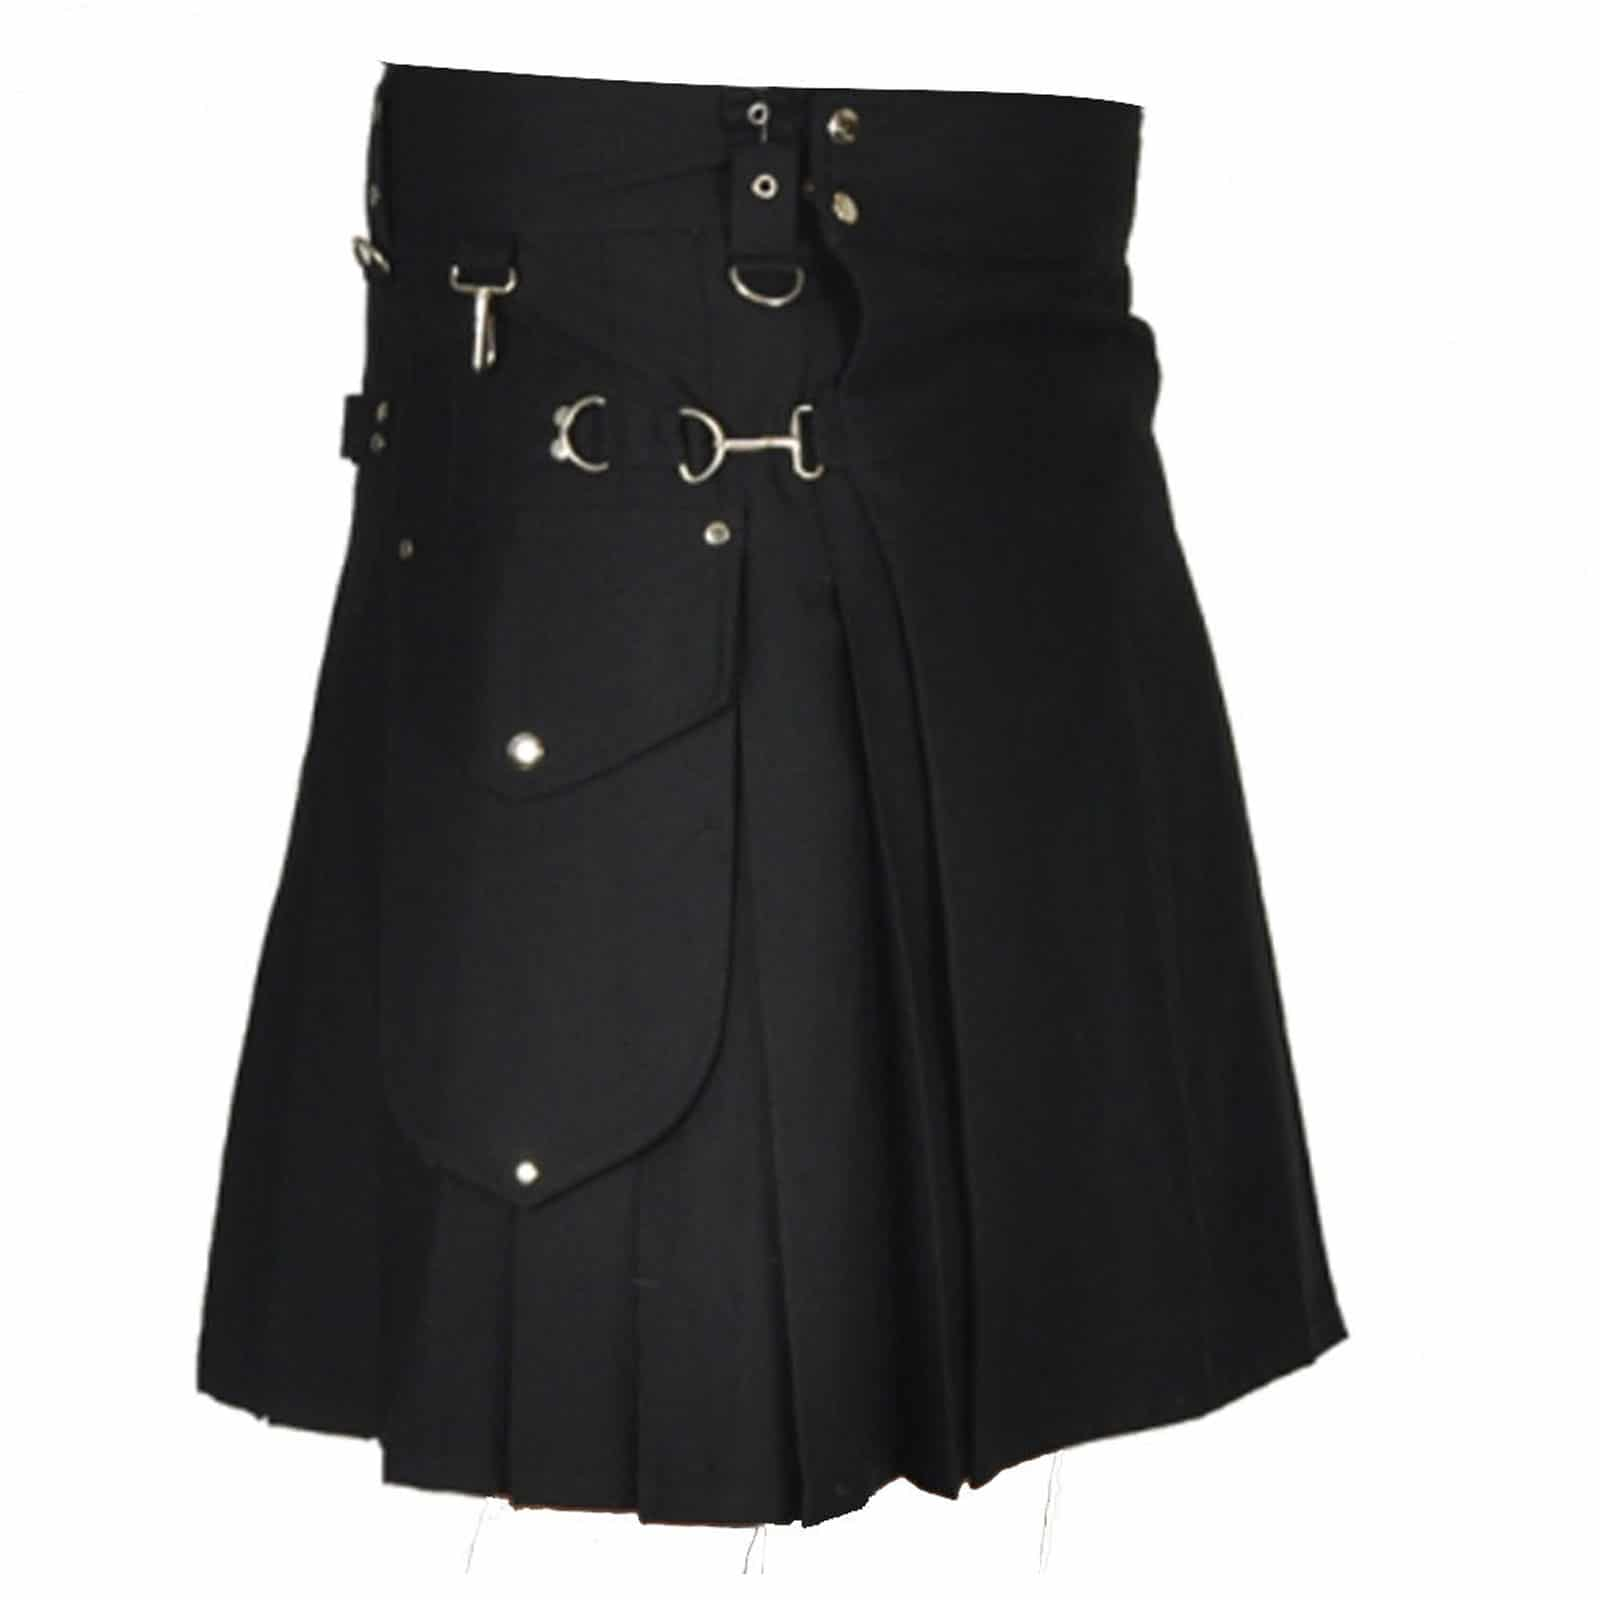 Stylish Black Utility Kilt